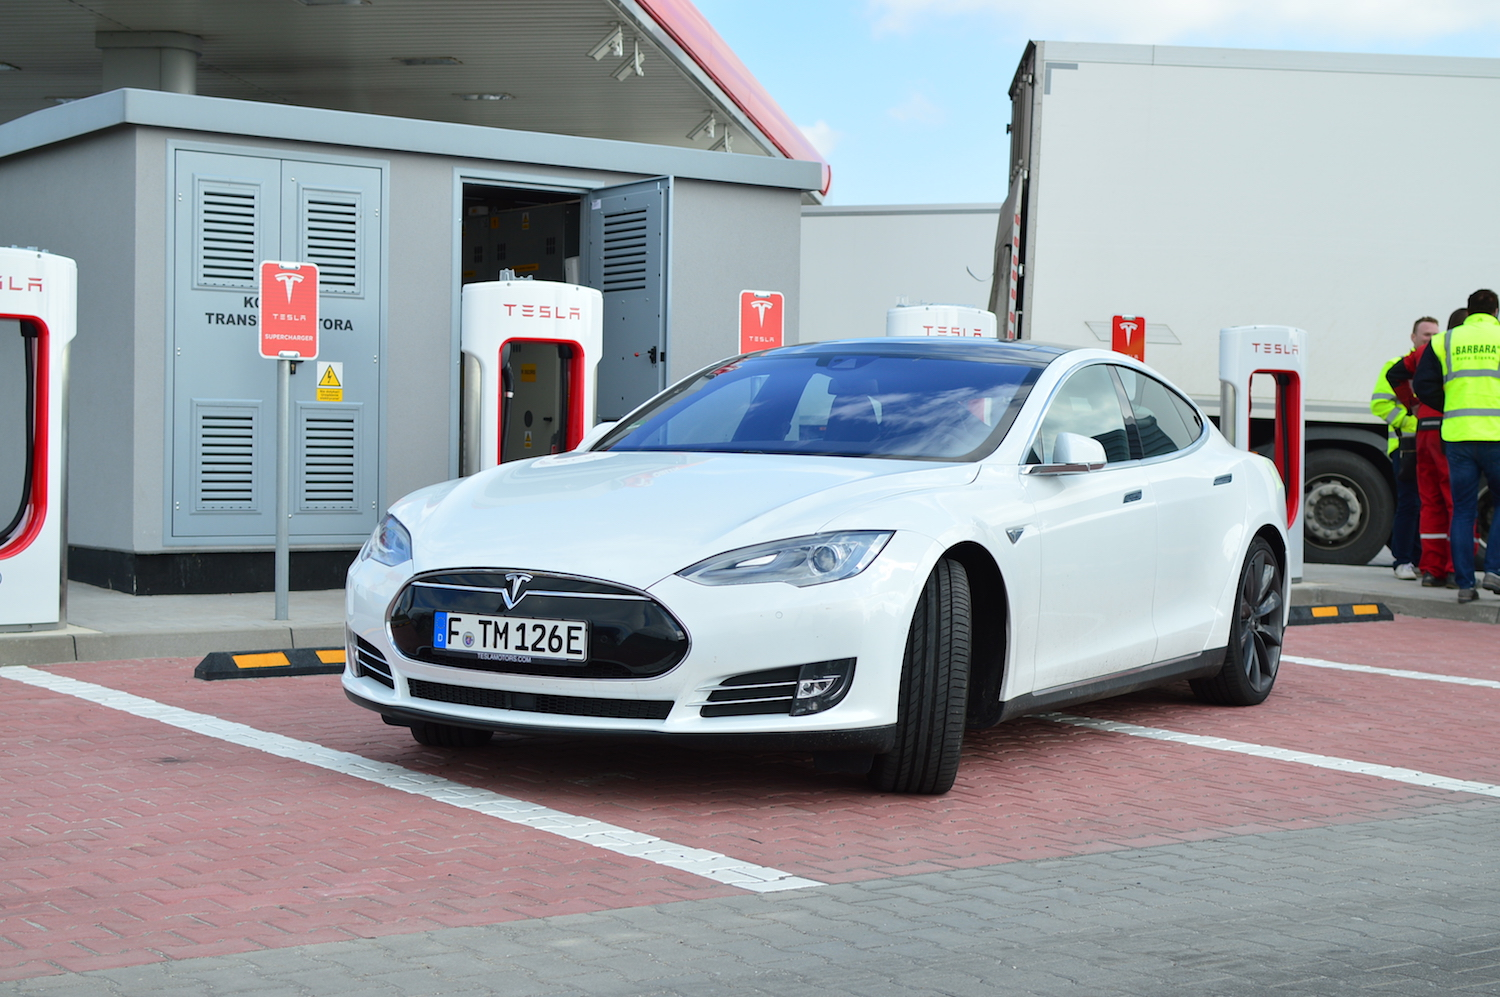 tesla model s wroclaw supercharger 2